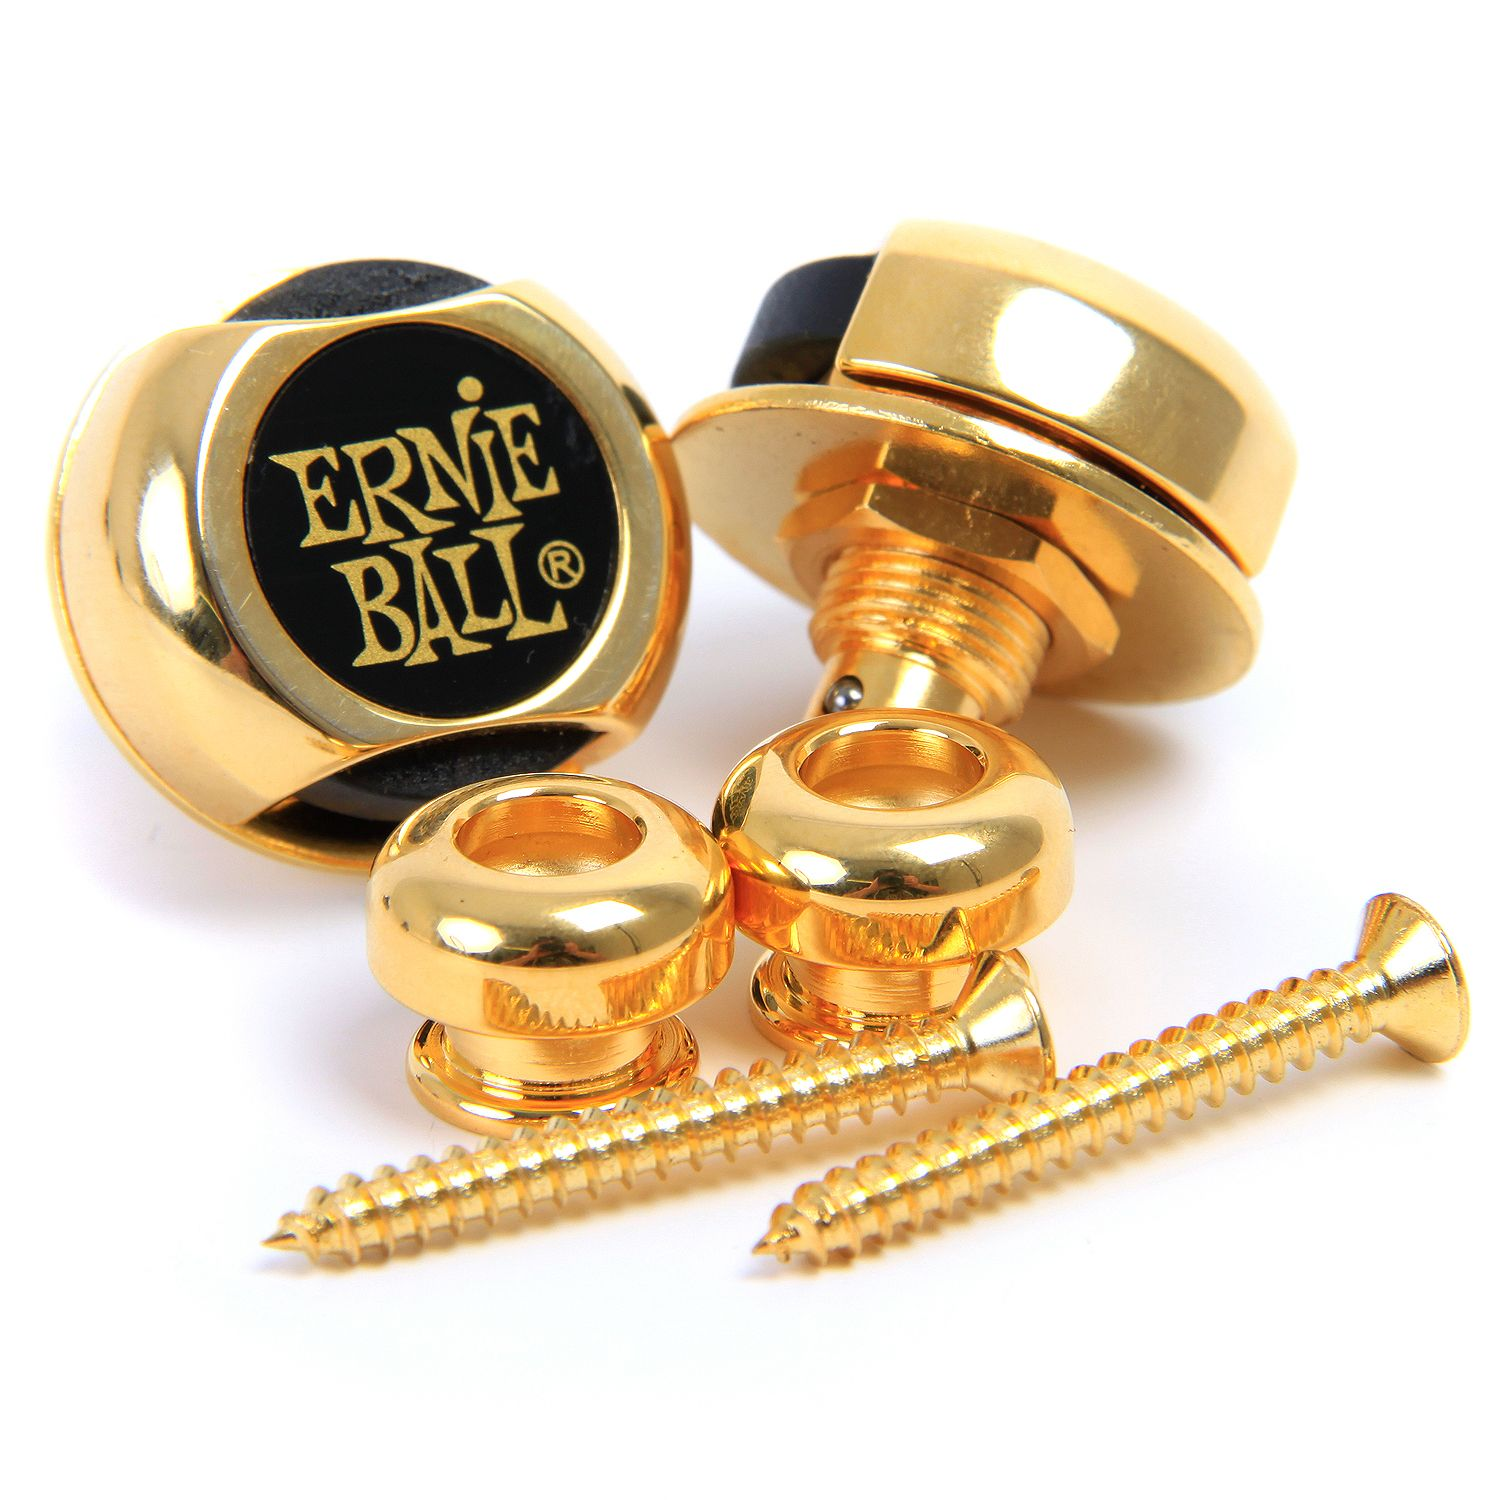 Ernie Ball 4602 Super Lock Gold